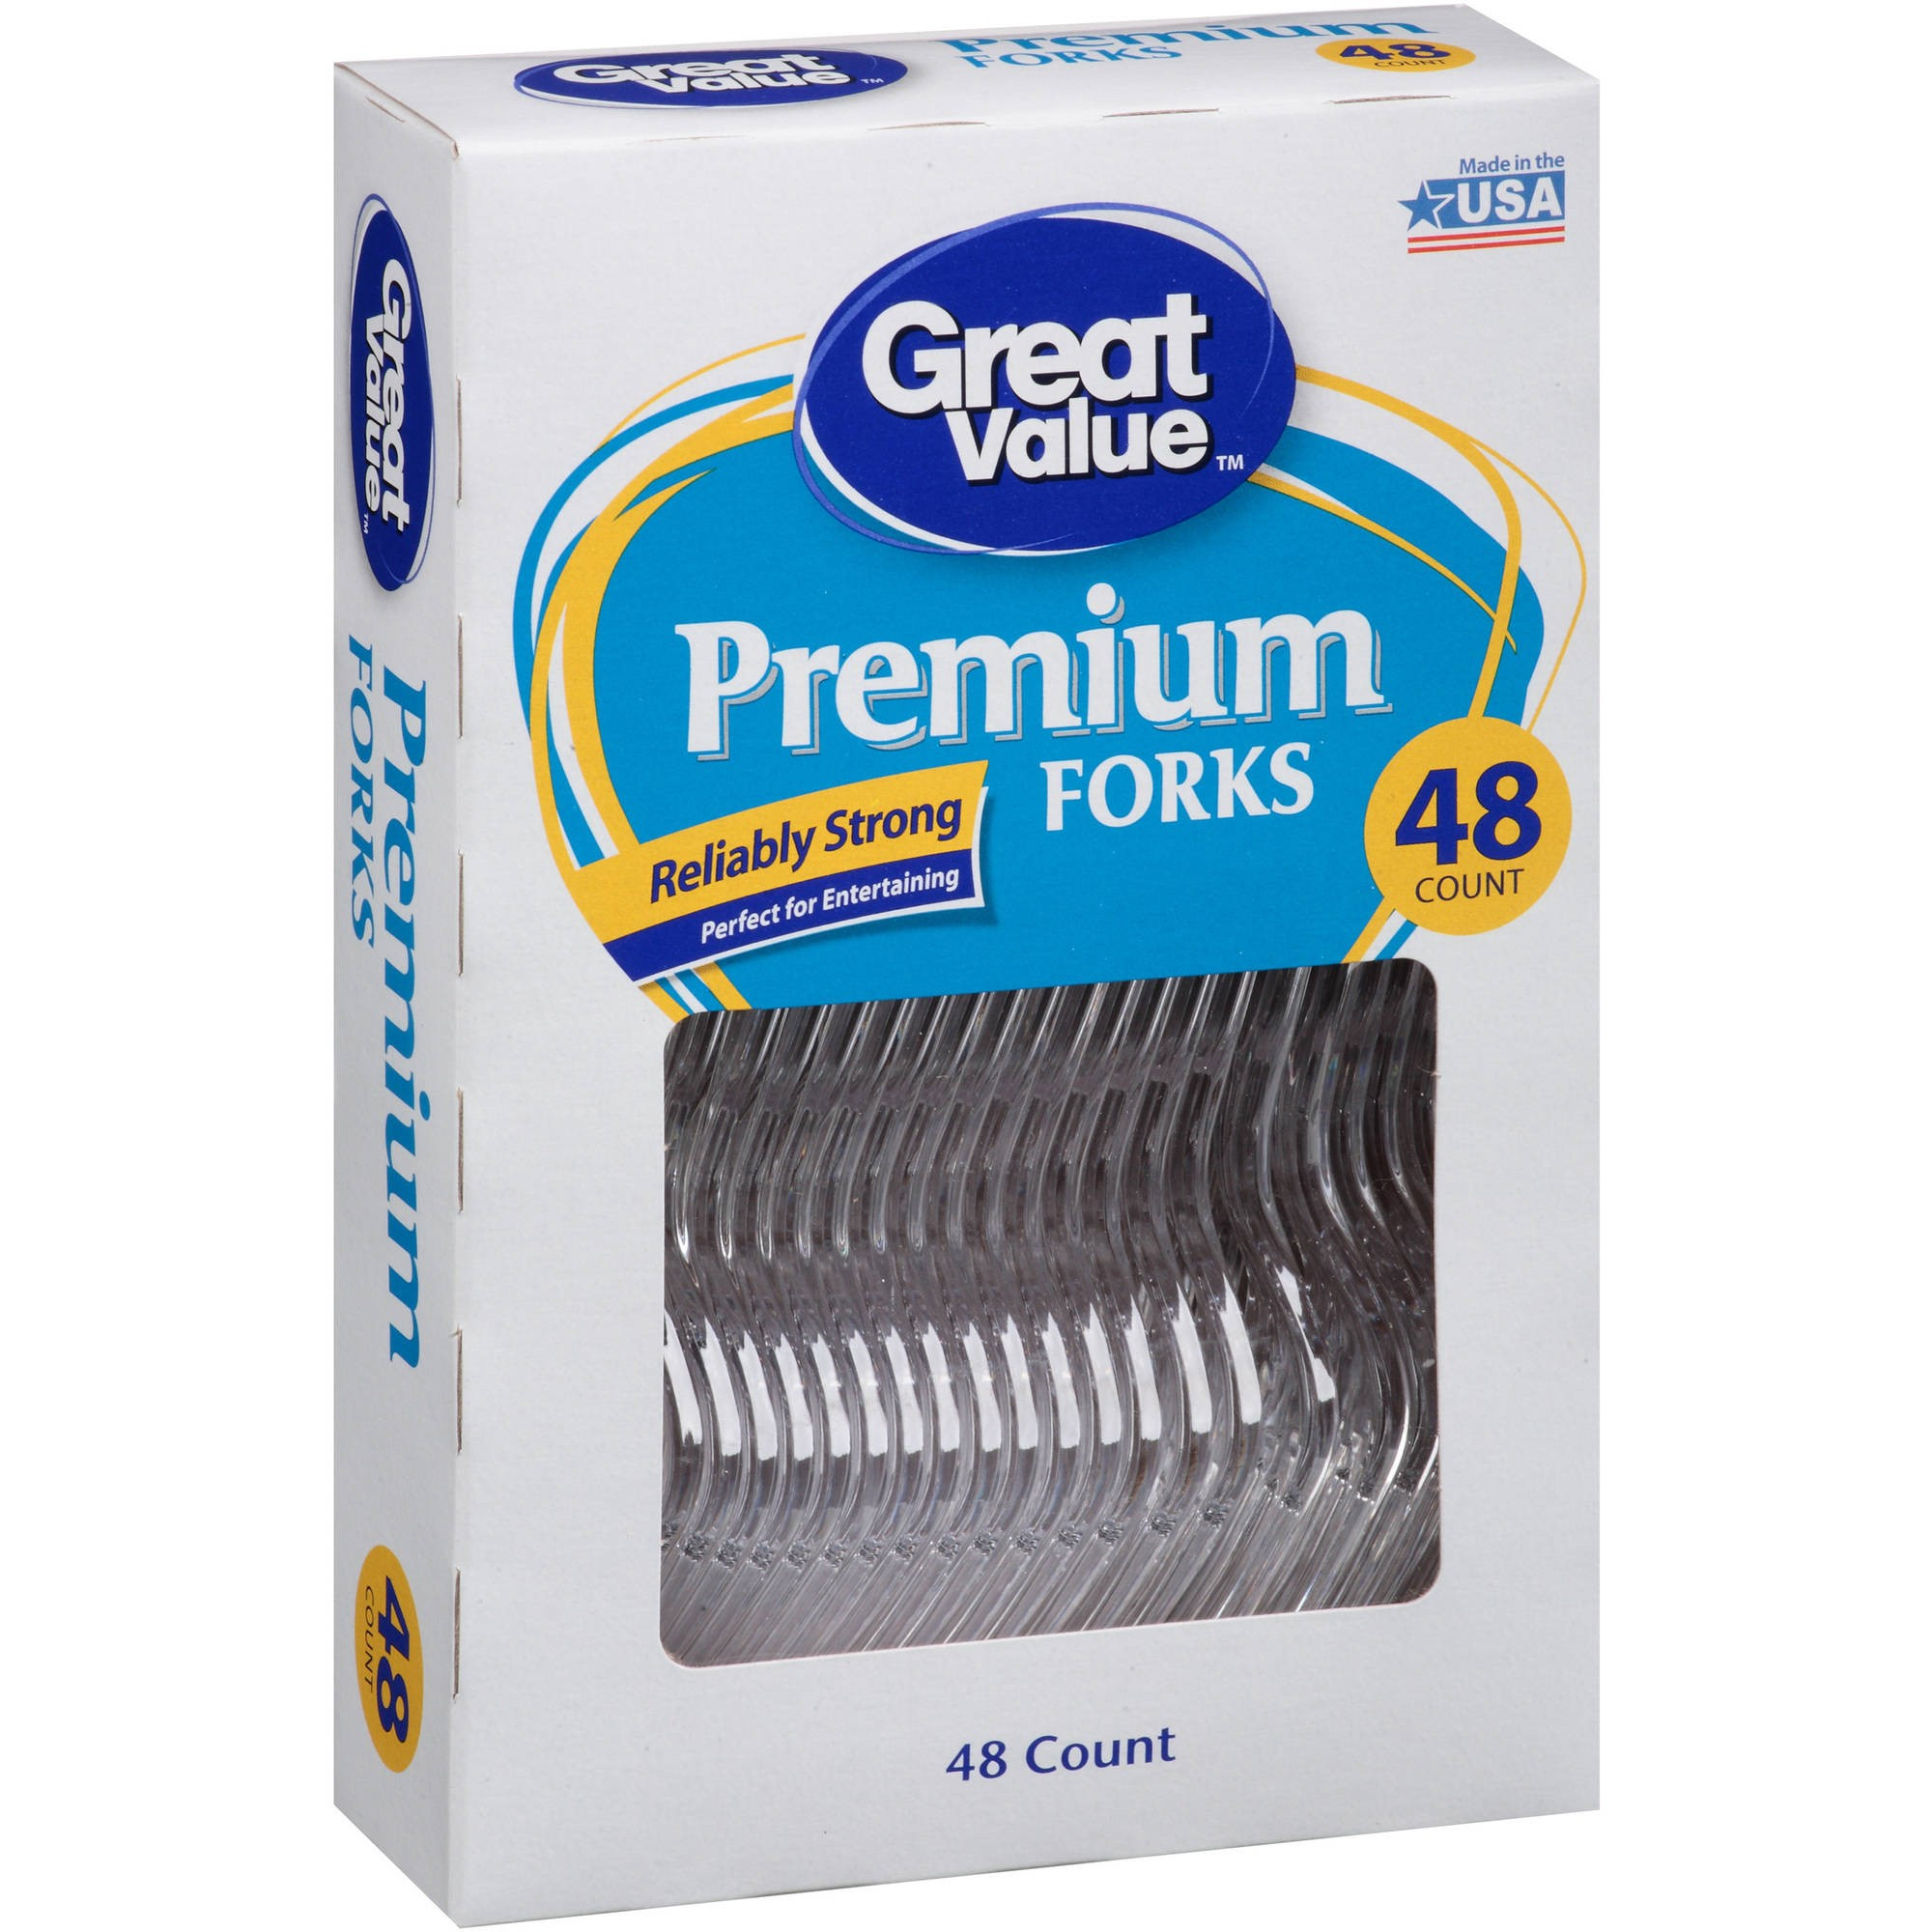 Great Value Premium Forks, 48 Ct